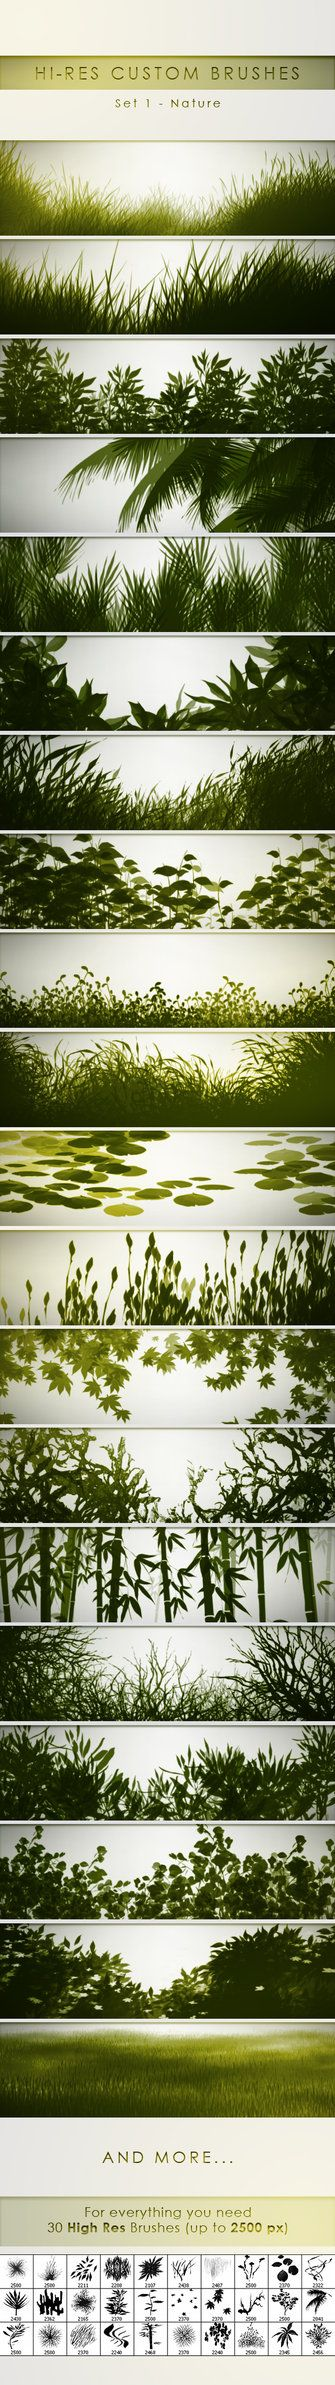 30 Hi-Res Custom Brushes - Nature by PrismaDesign.deviantart.com on @DeviantArt